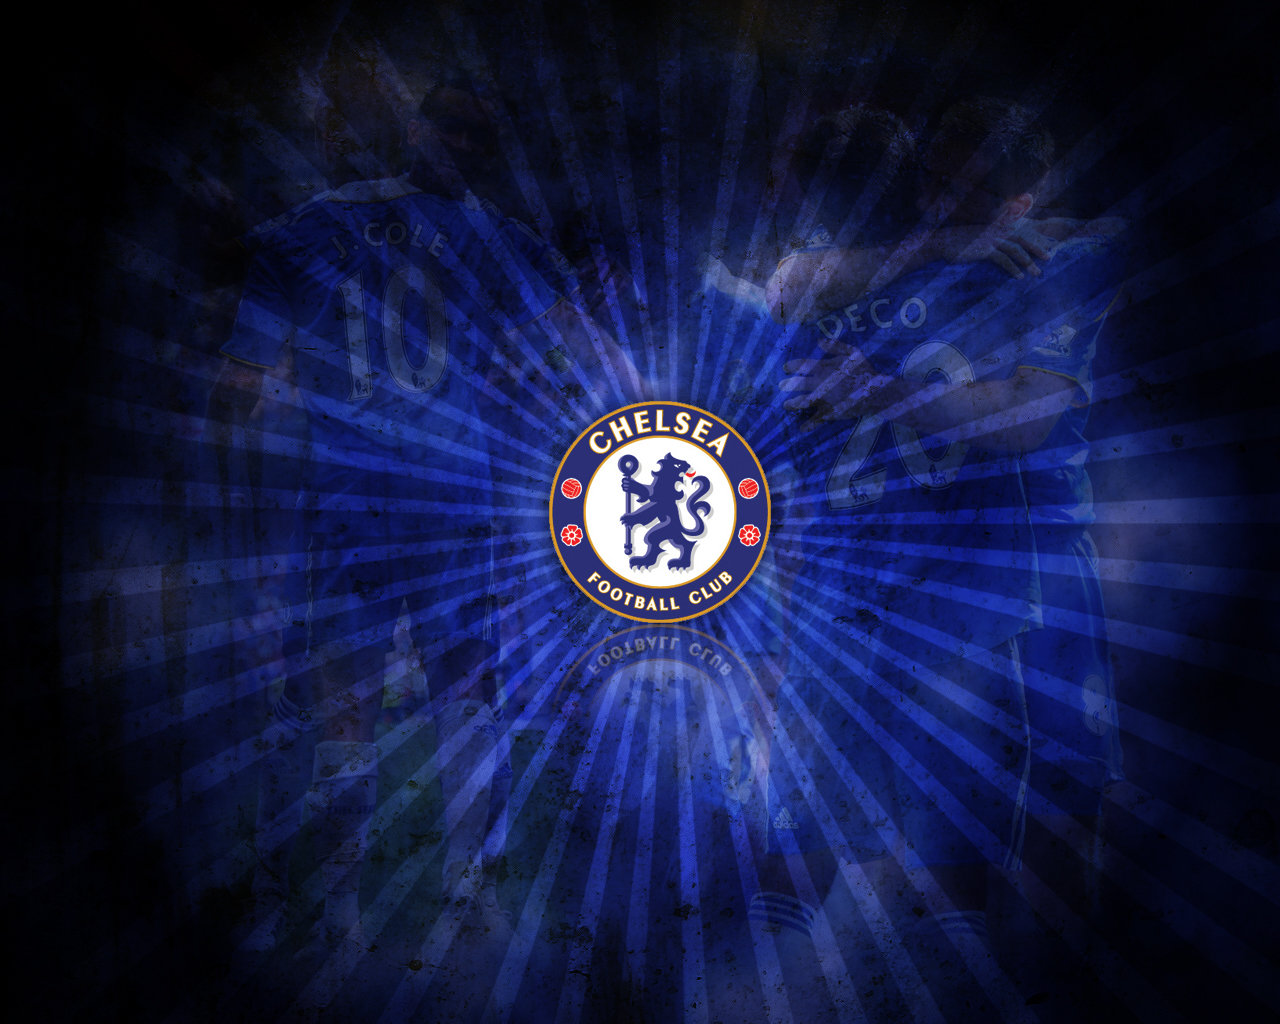 Chelsea FC Wallpaper by robfenech 1280x1024